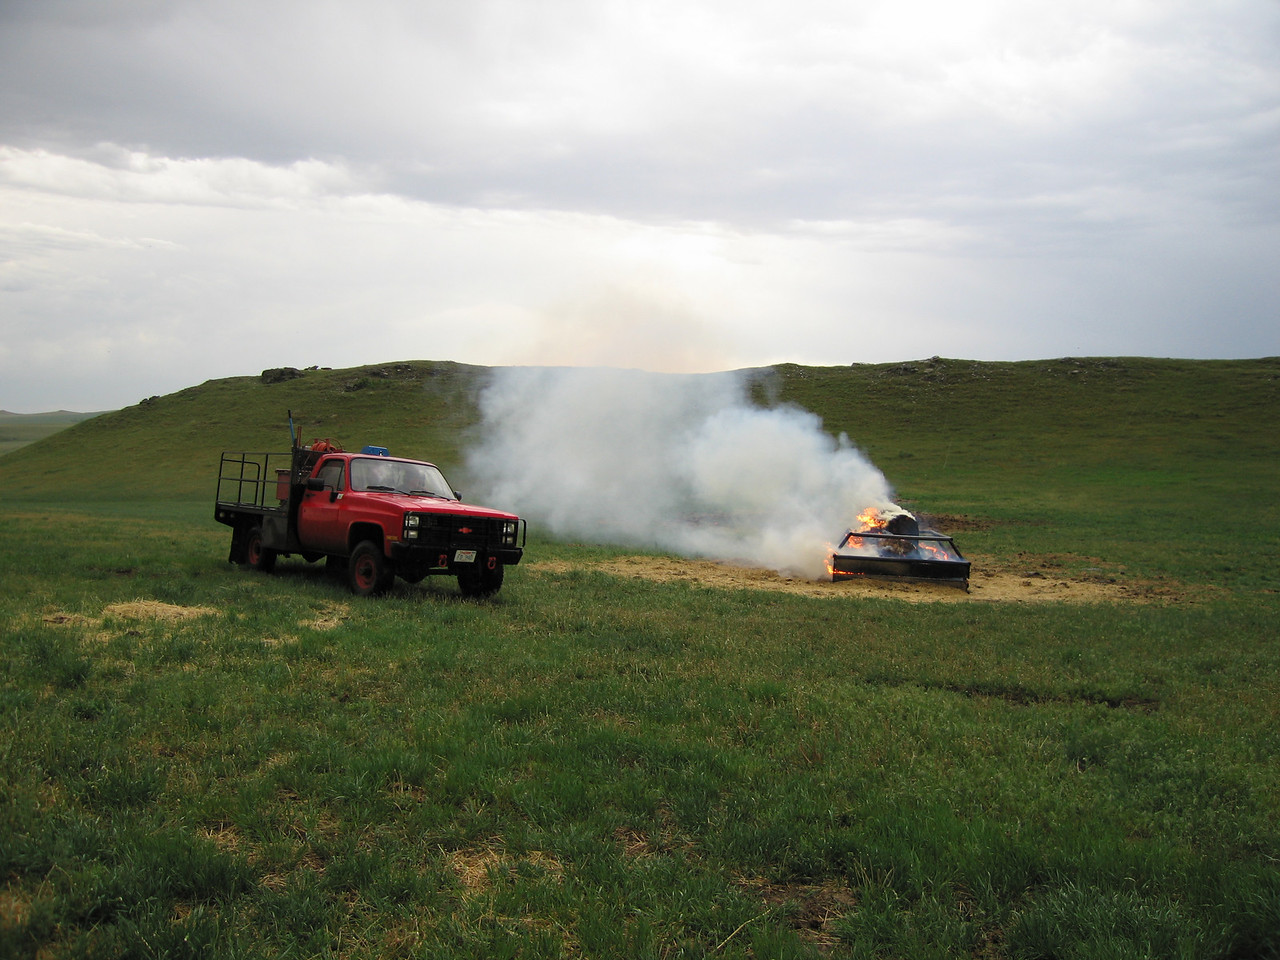 Shortly after we arrived at my parent's place, lightning hit a bale feeder...